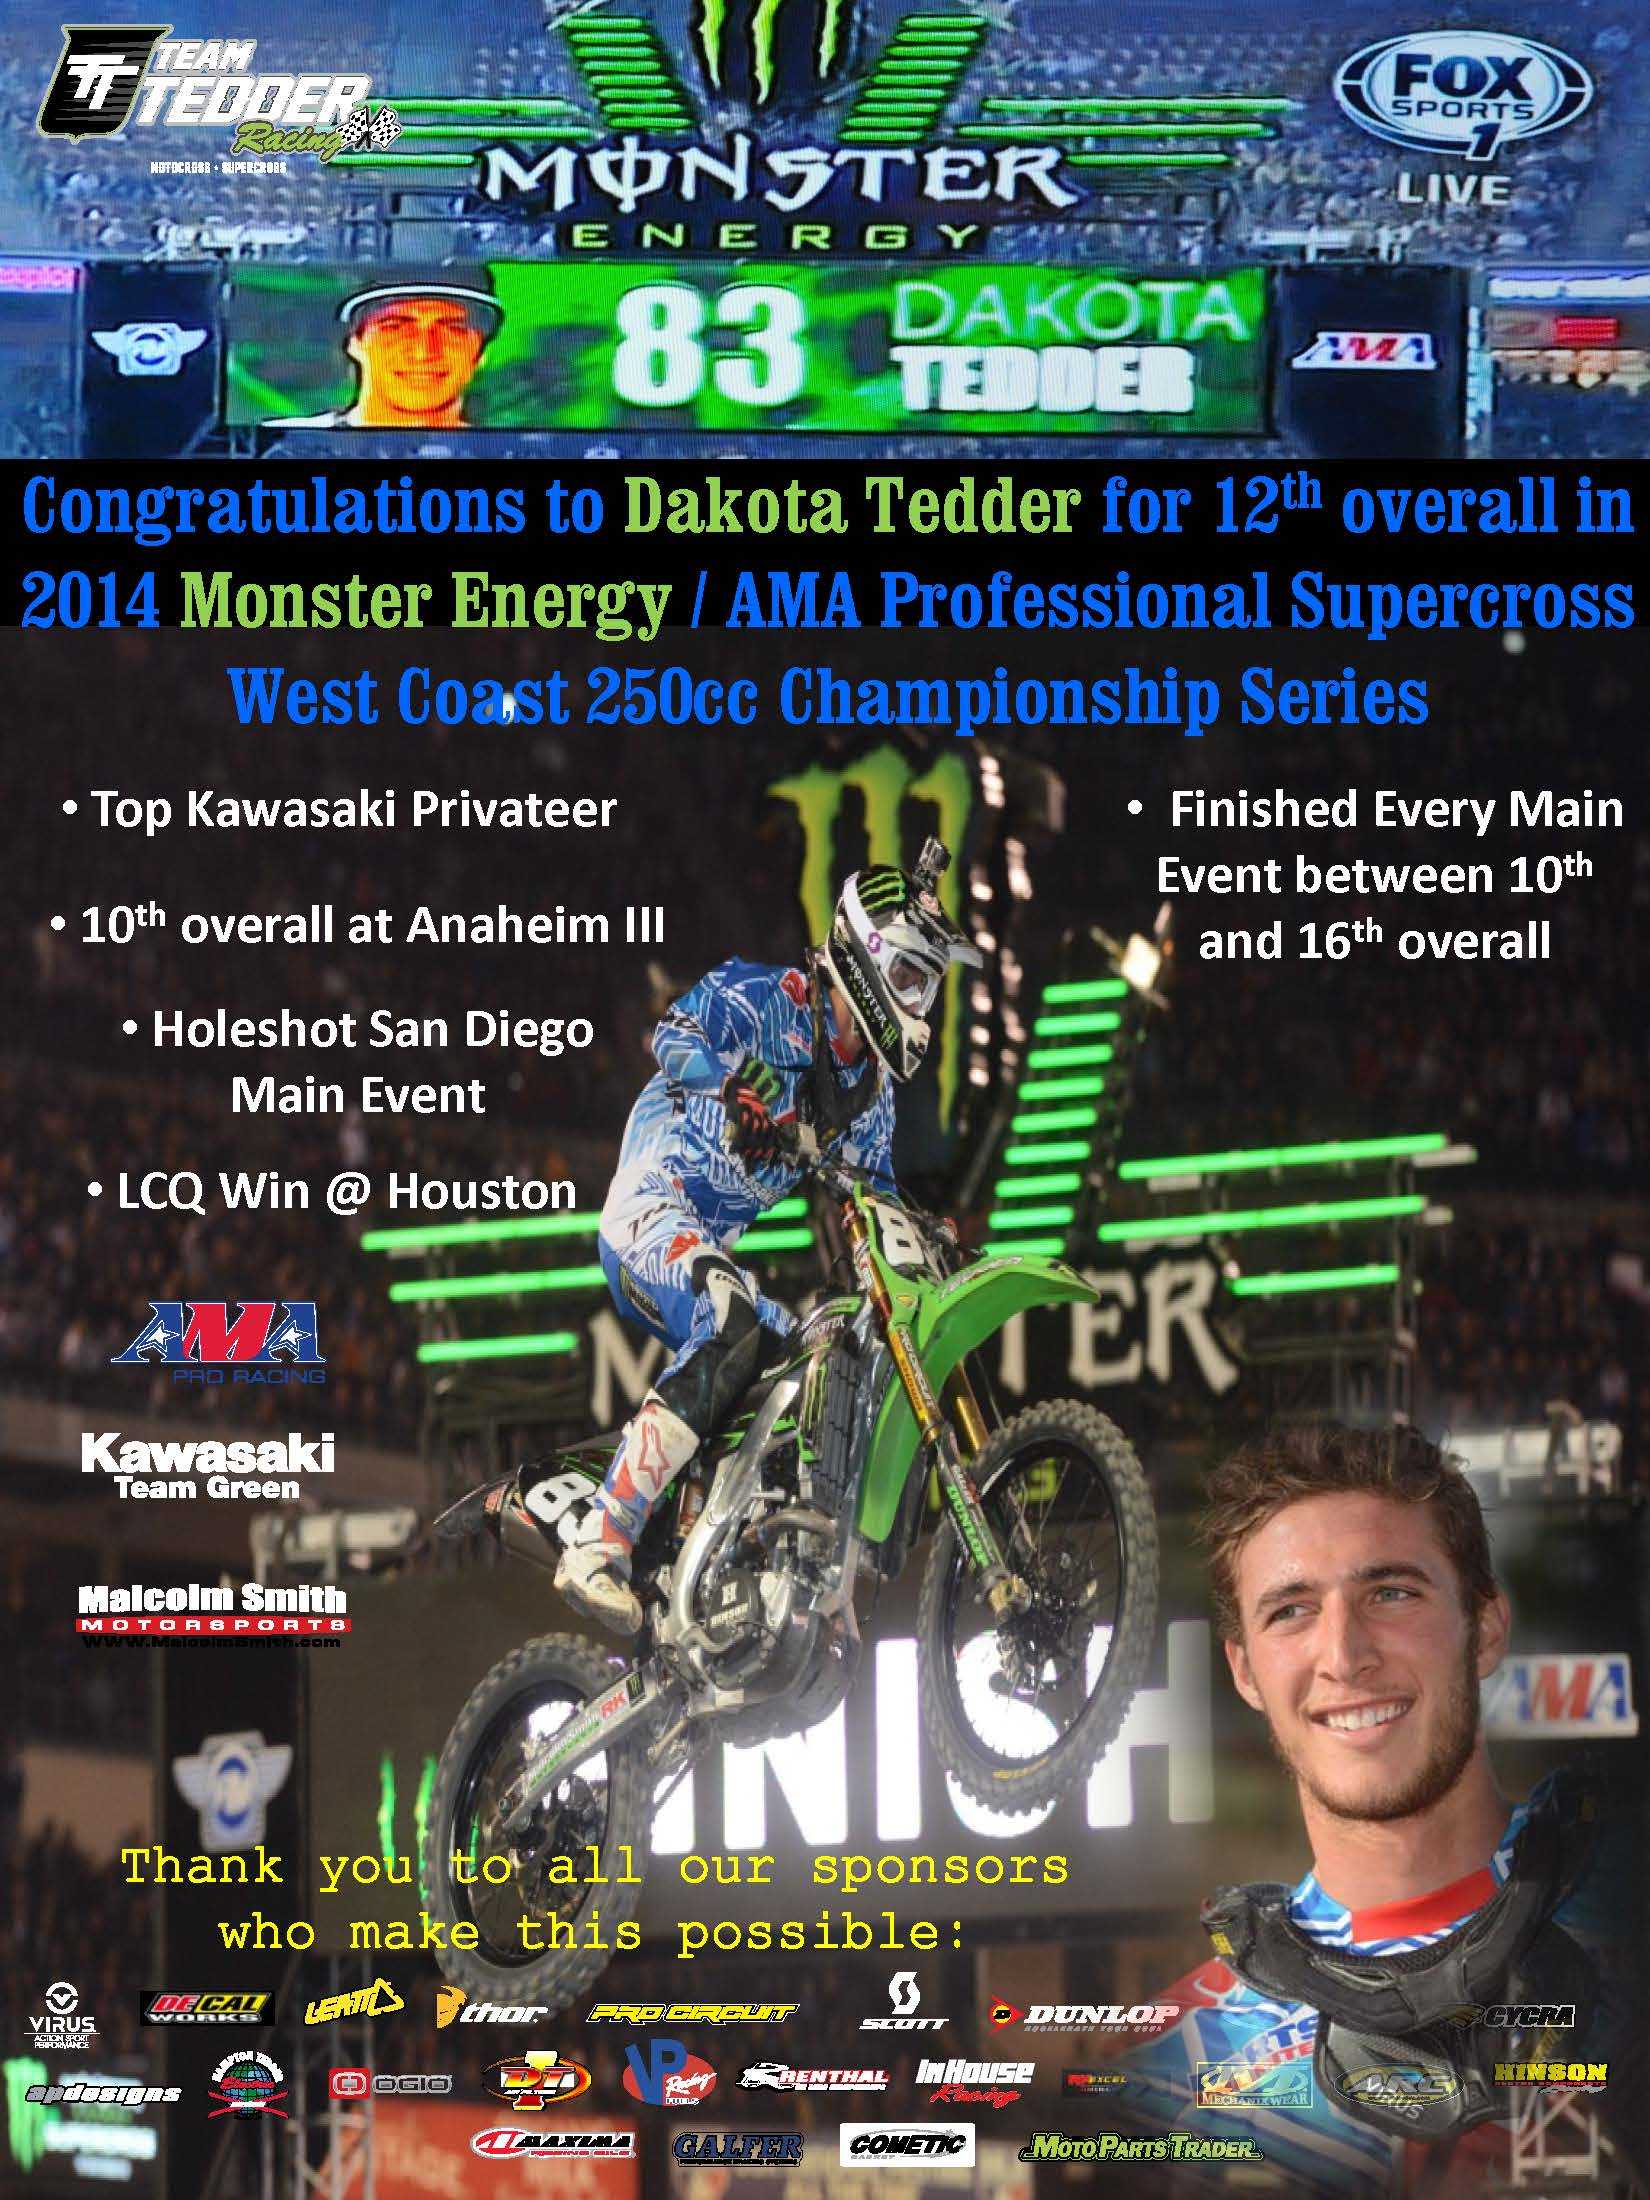 2014 Supercross Season - Team Tedder-Monster Energy Racing